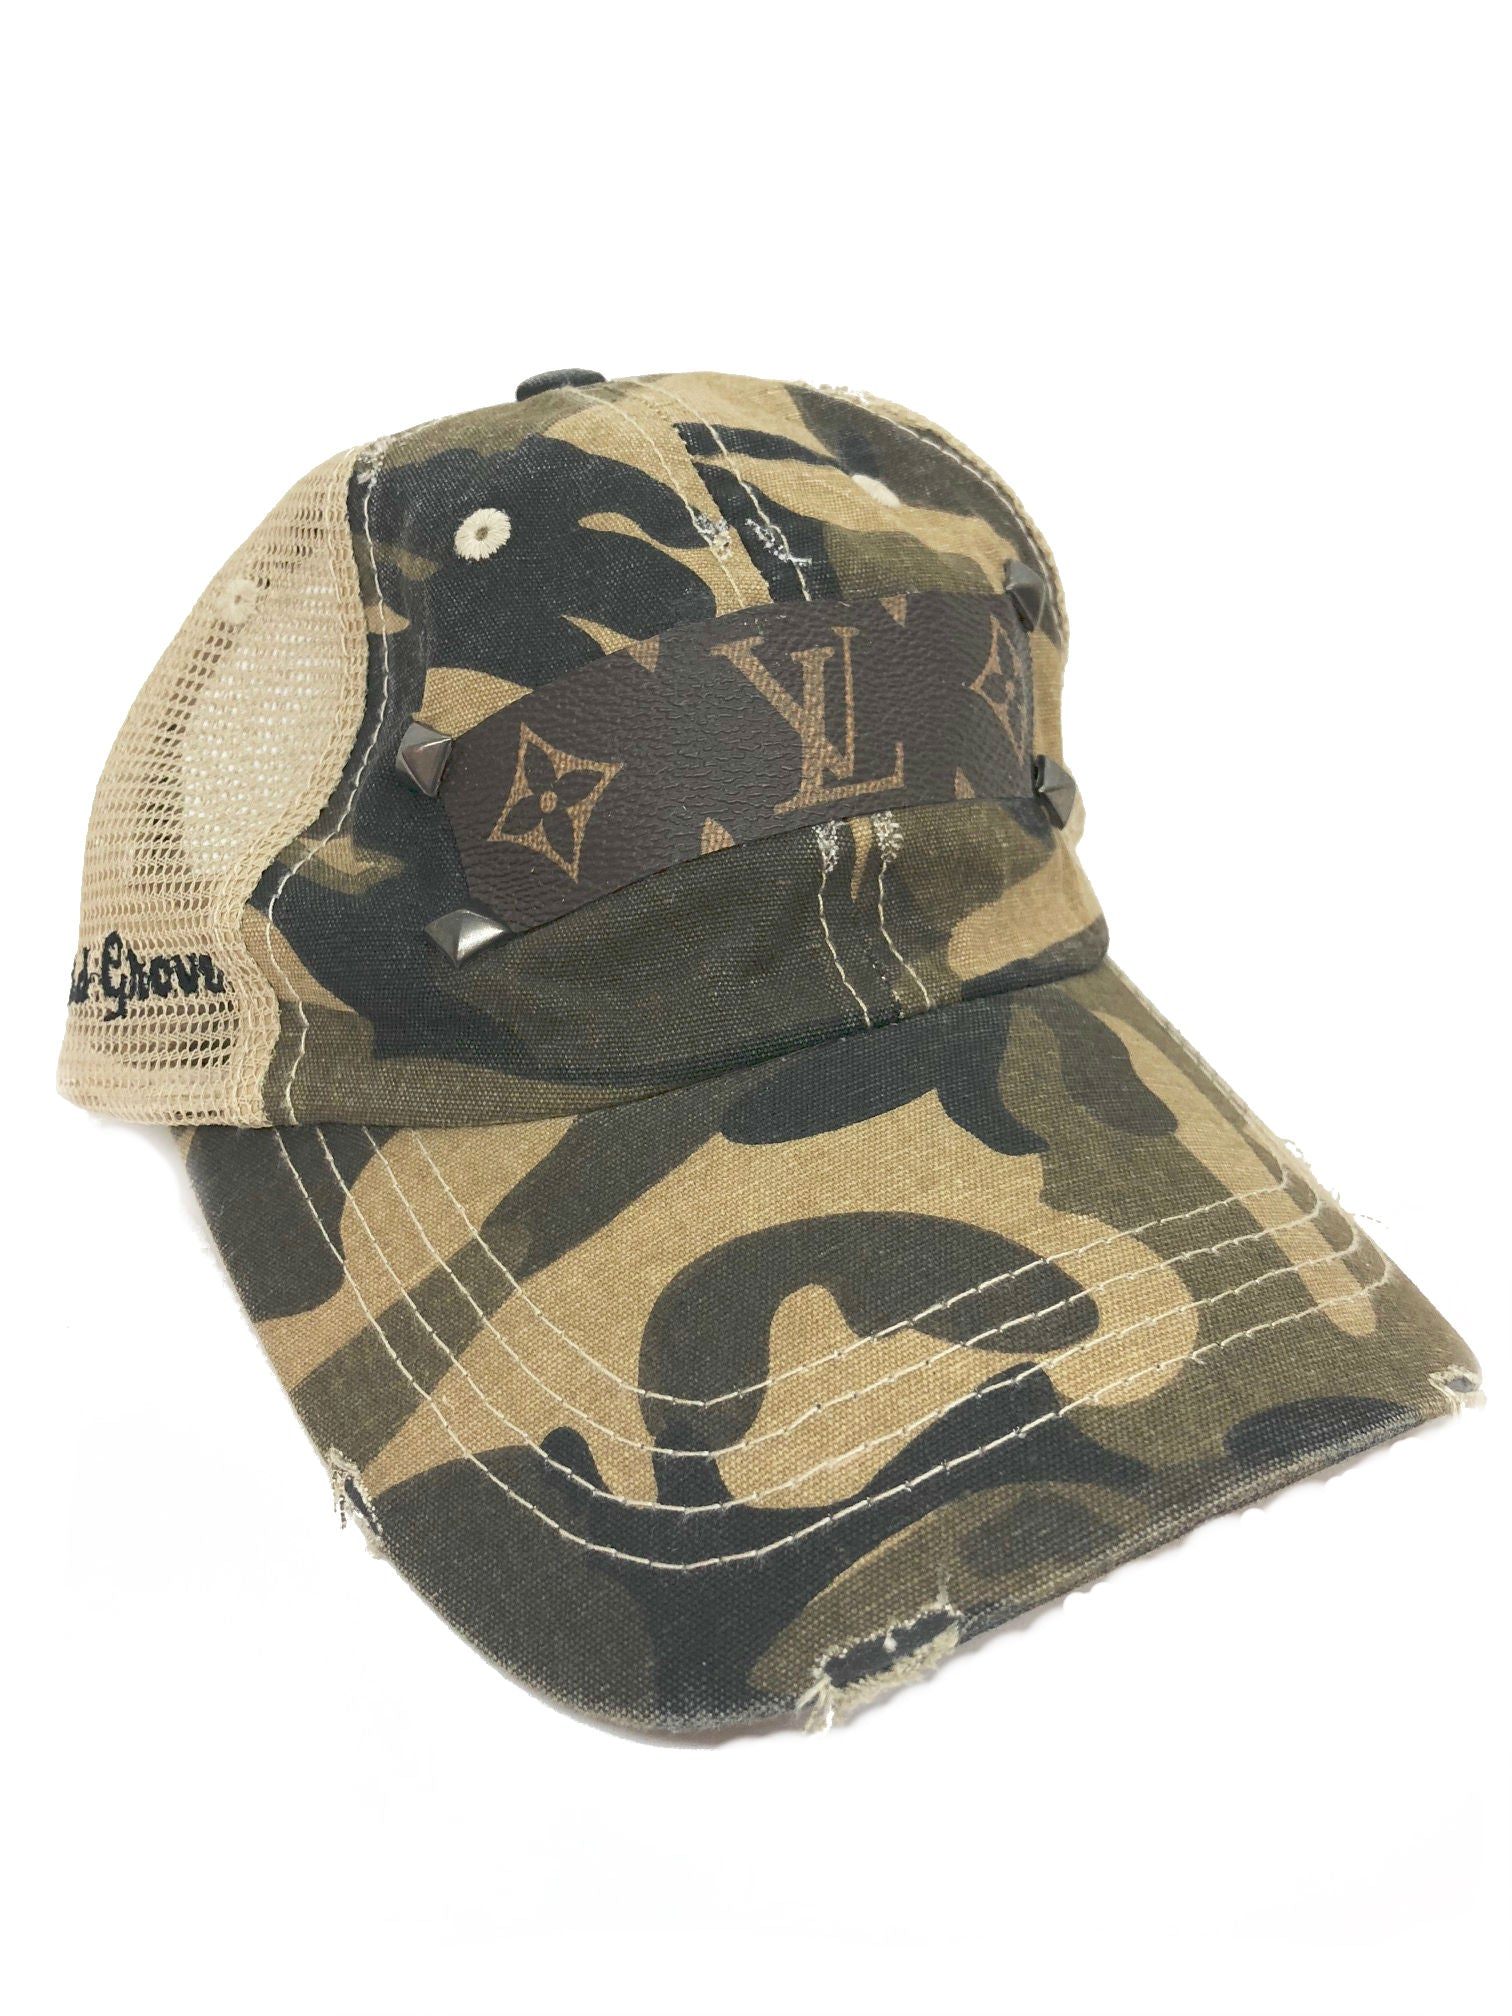 Camo Mesh Baseball Hat with Louis Vuitton in Tan – Leopard Grove 140a39990e5